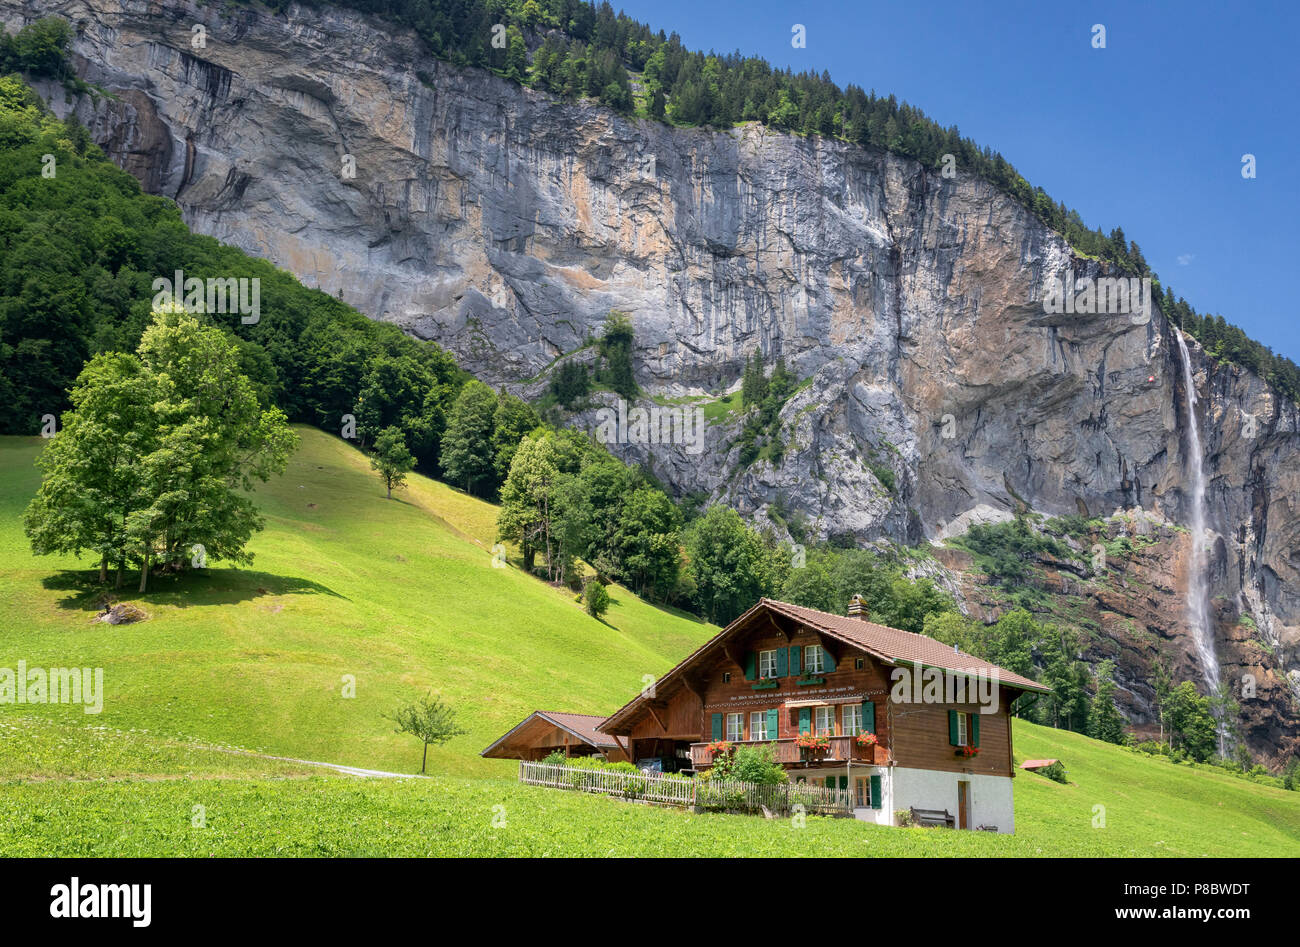 View of a farm house near Lauterbrunnen and with Staubbach Falls in the background, Interlaken-Oberhasli, Bern, Switzerland - Stock Image